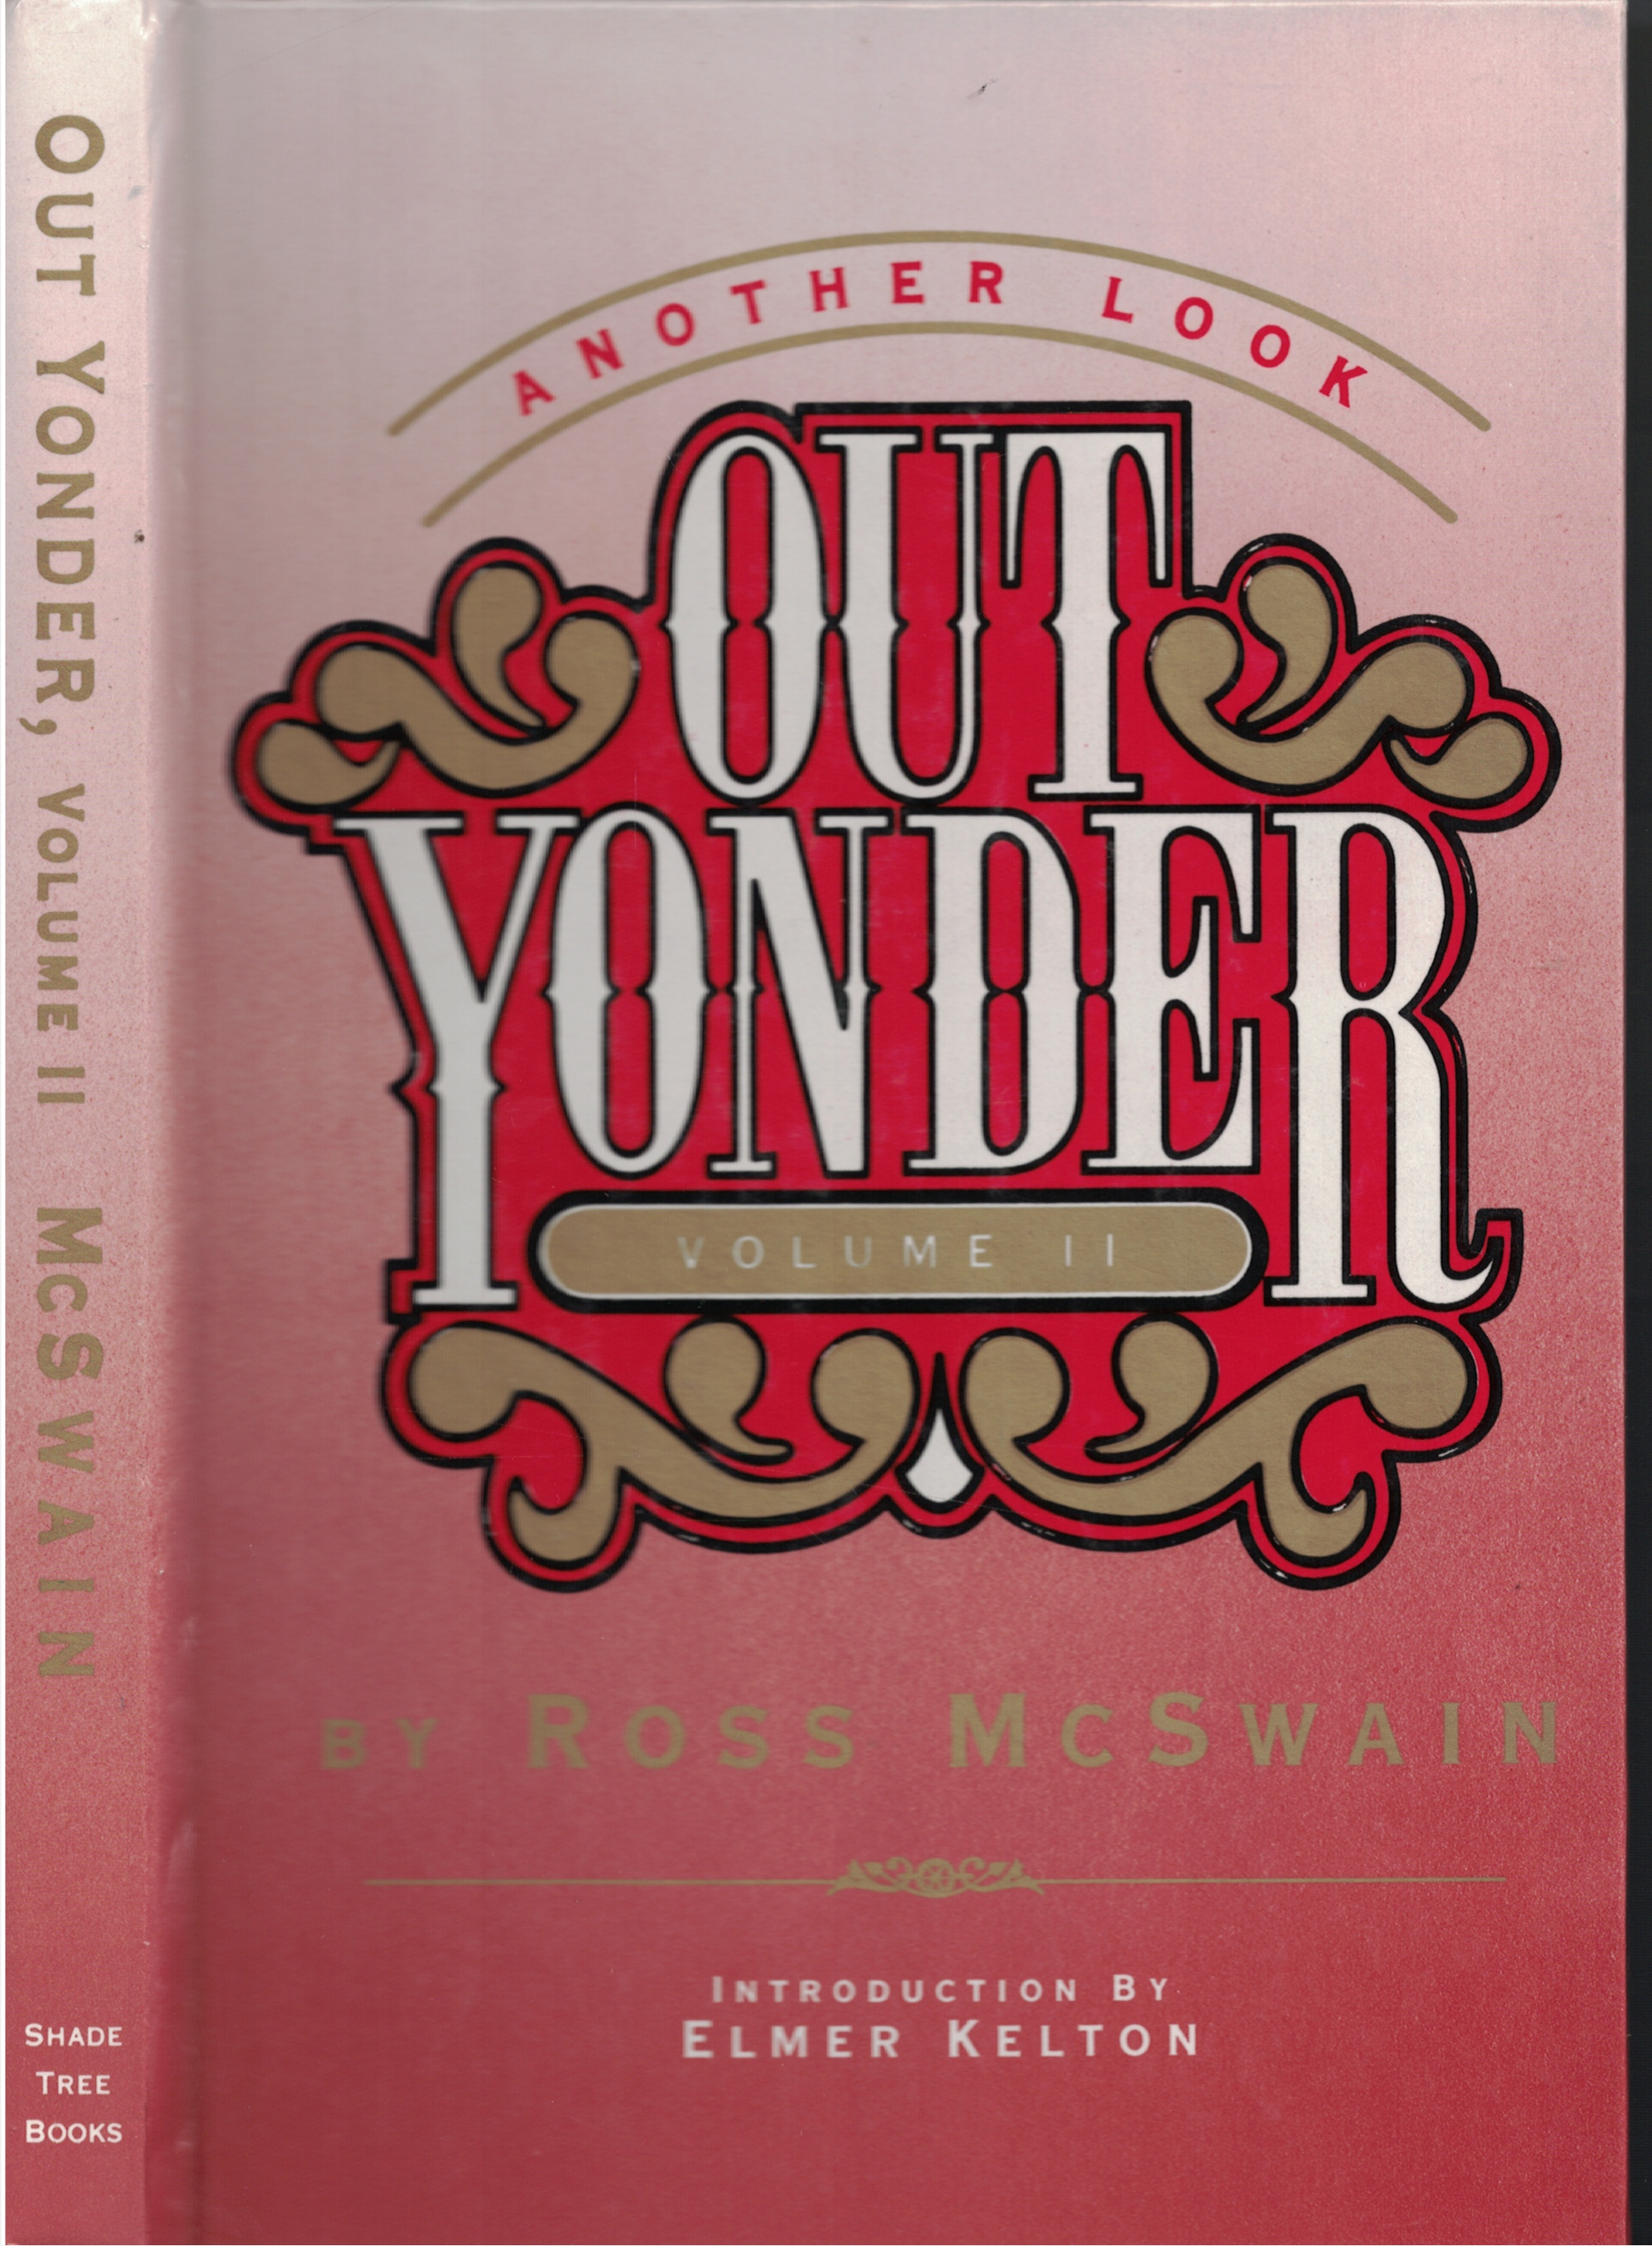 Image for Another Look Out Yonder Volume II